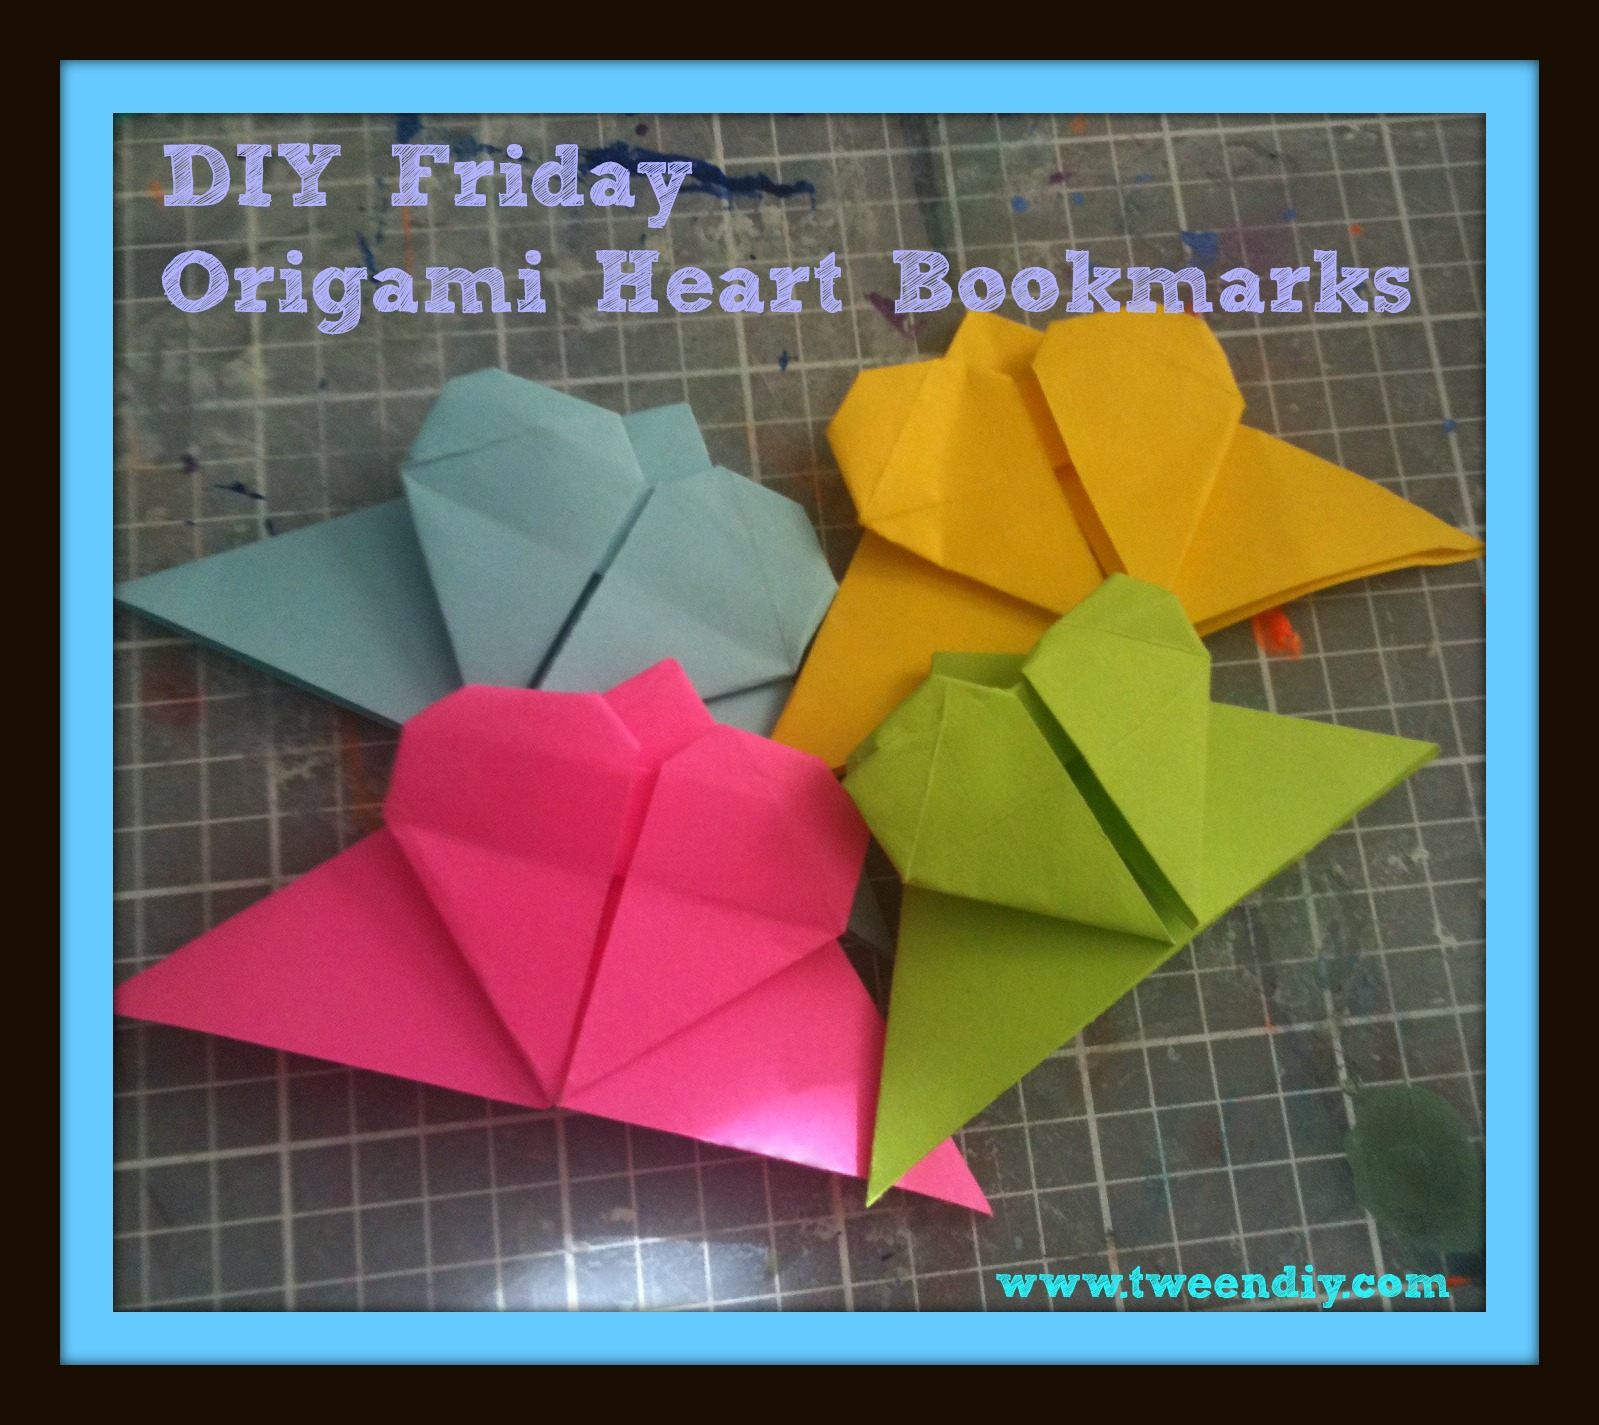 ArchGuide: Learn to Make Some Origami Heart Corner Bookmarks | 1425x1599